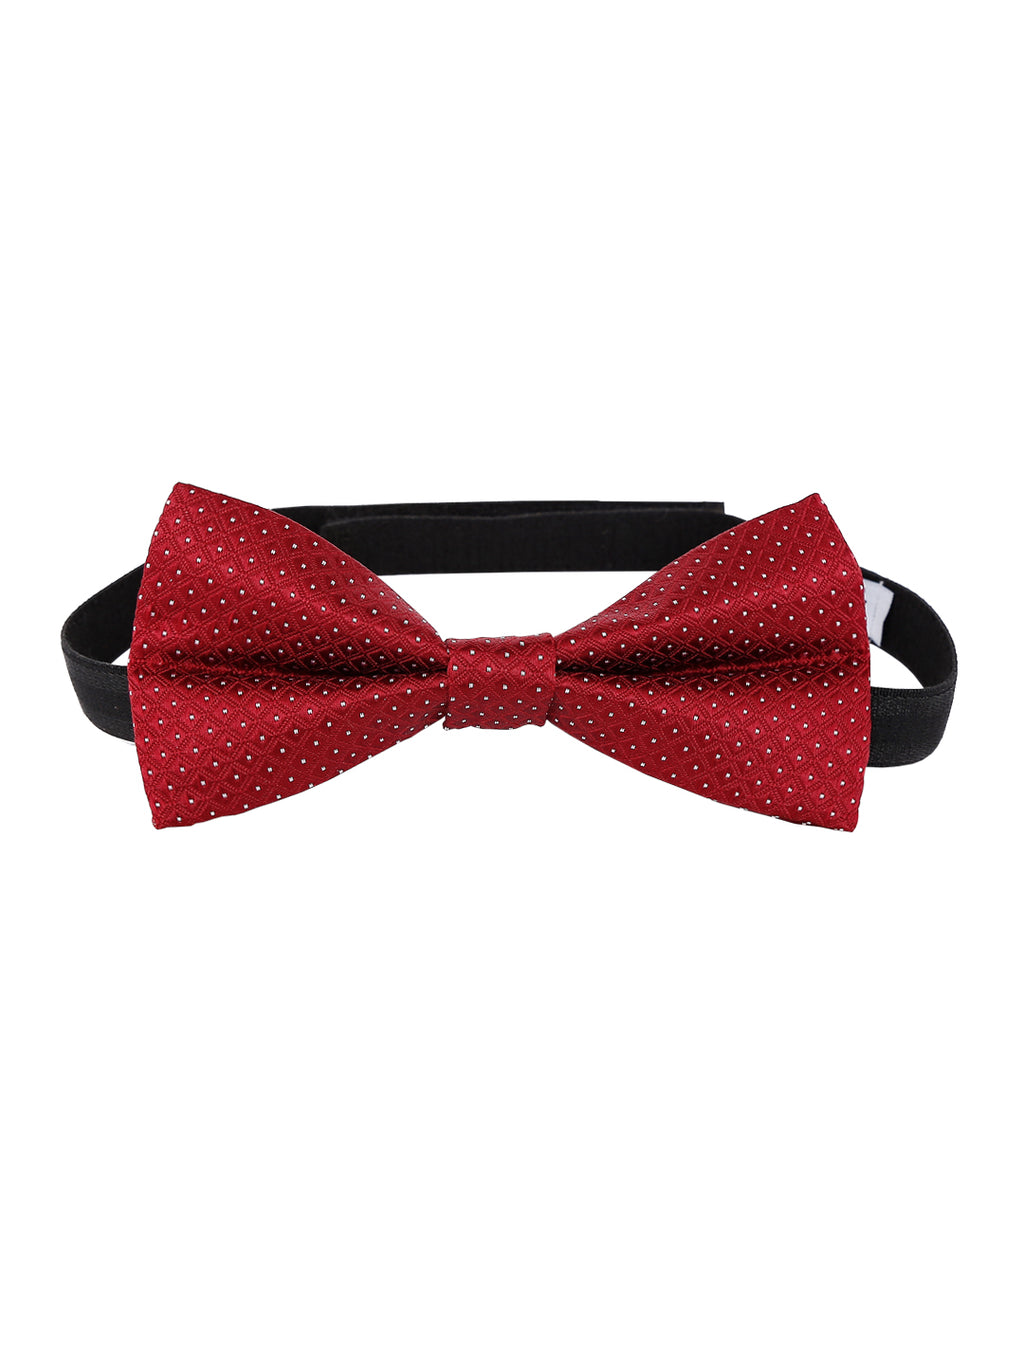 Zido Bow Tie for Men BJQ702